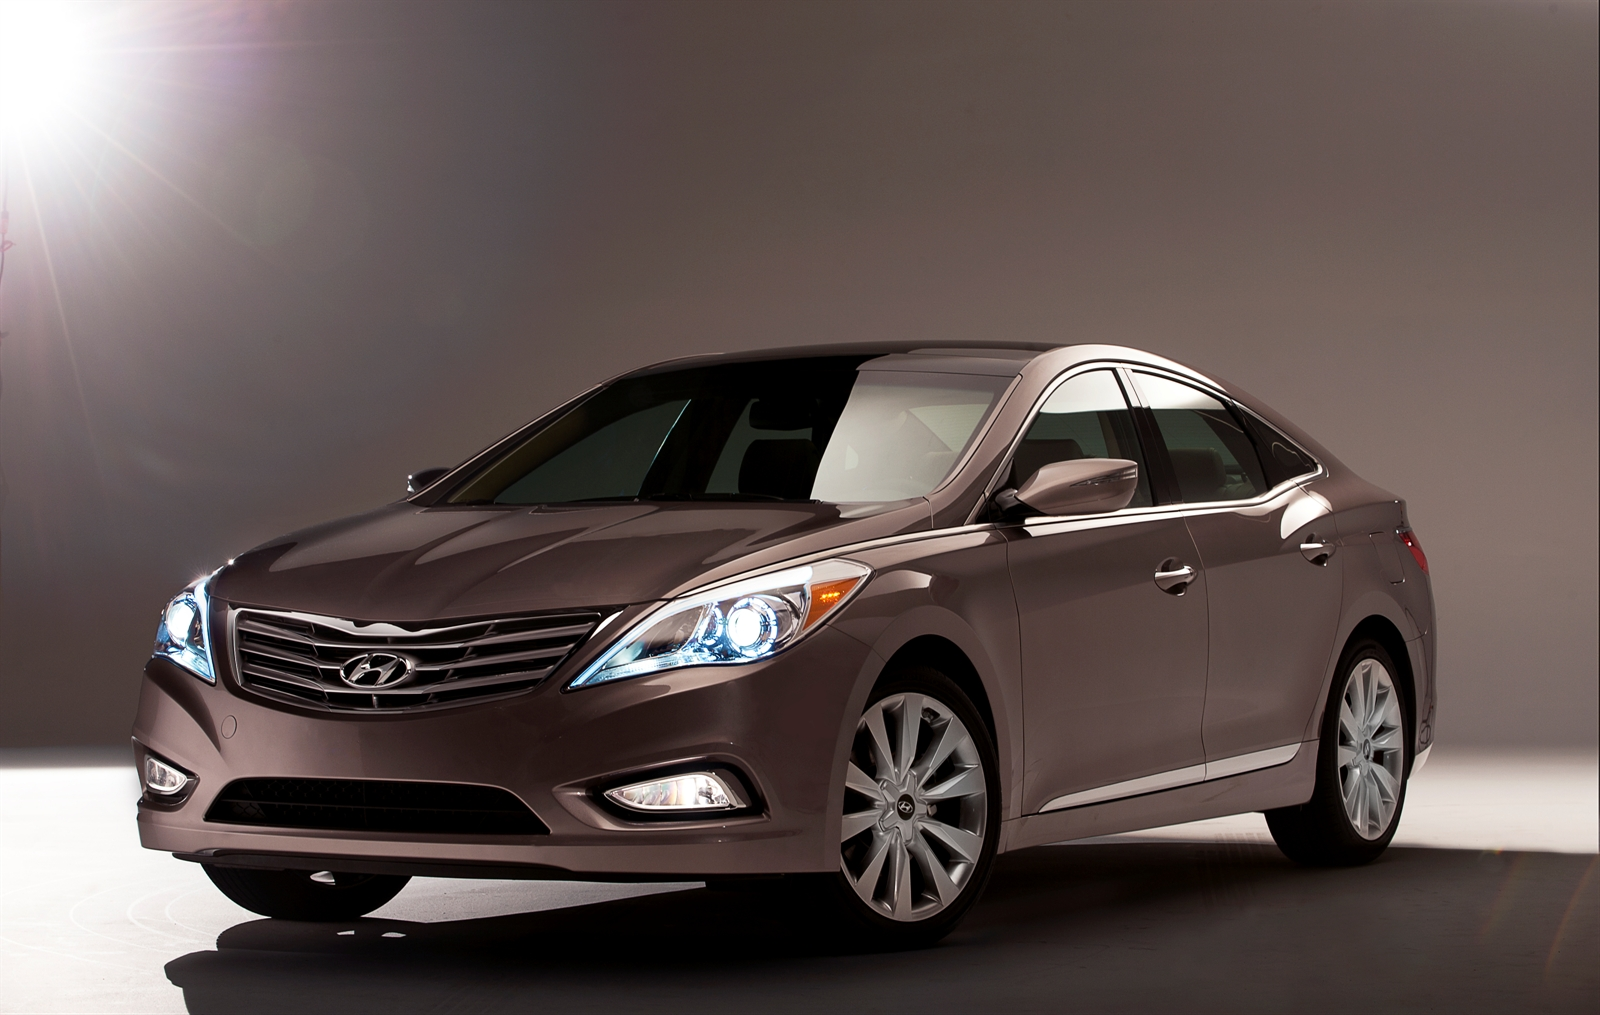 pricing hyundai with azera to sale indnets used features edmunds regard for com